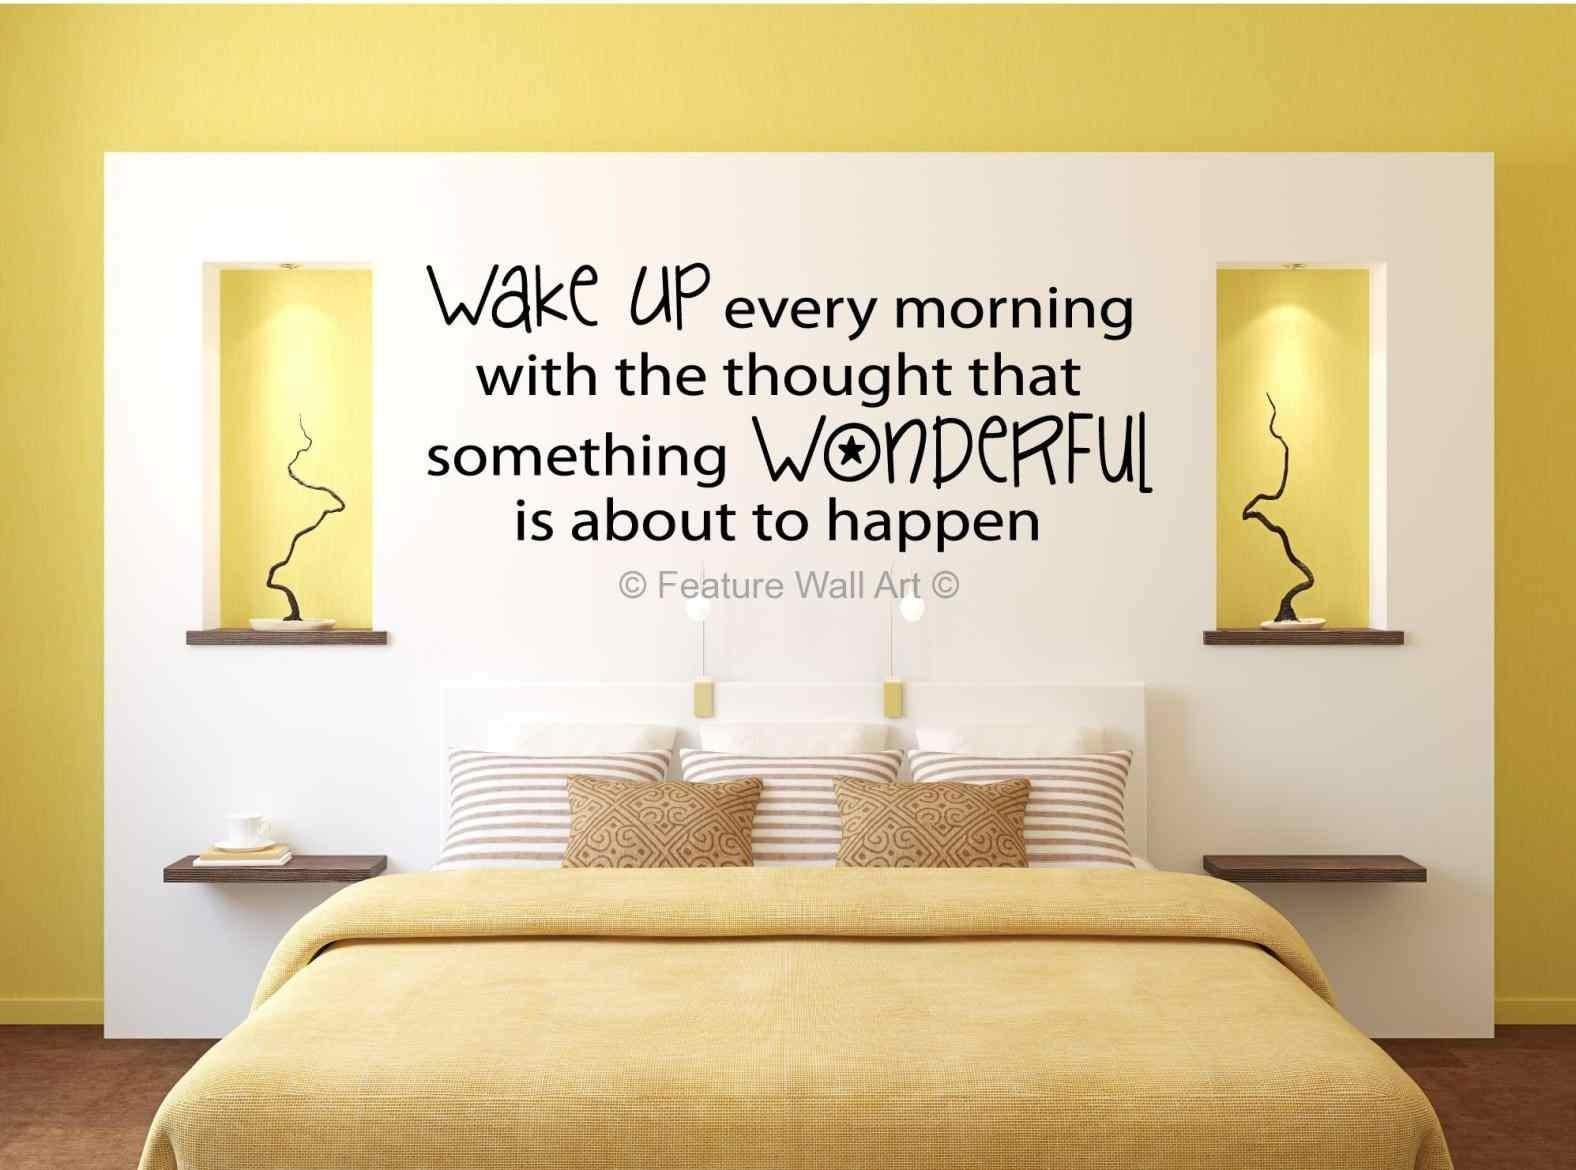 Tumblr Rooms With Quotes On Walls   Datenlabor In Coco Chanel Wall Decals (Image 18 of 20)